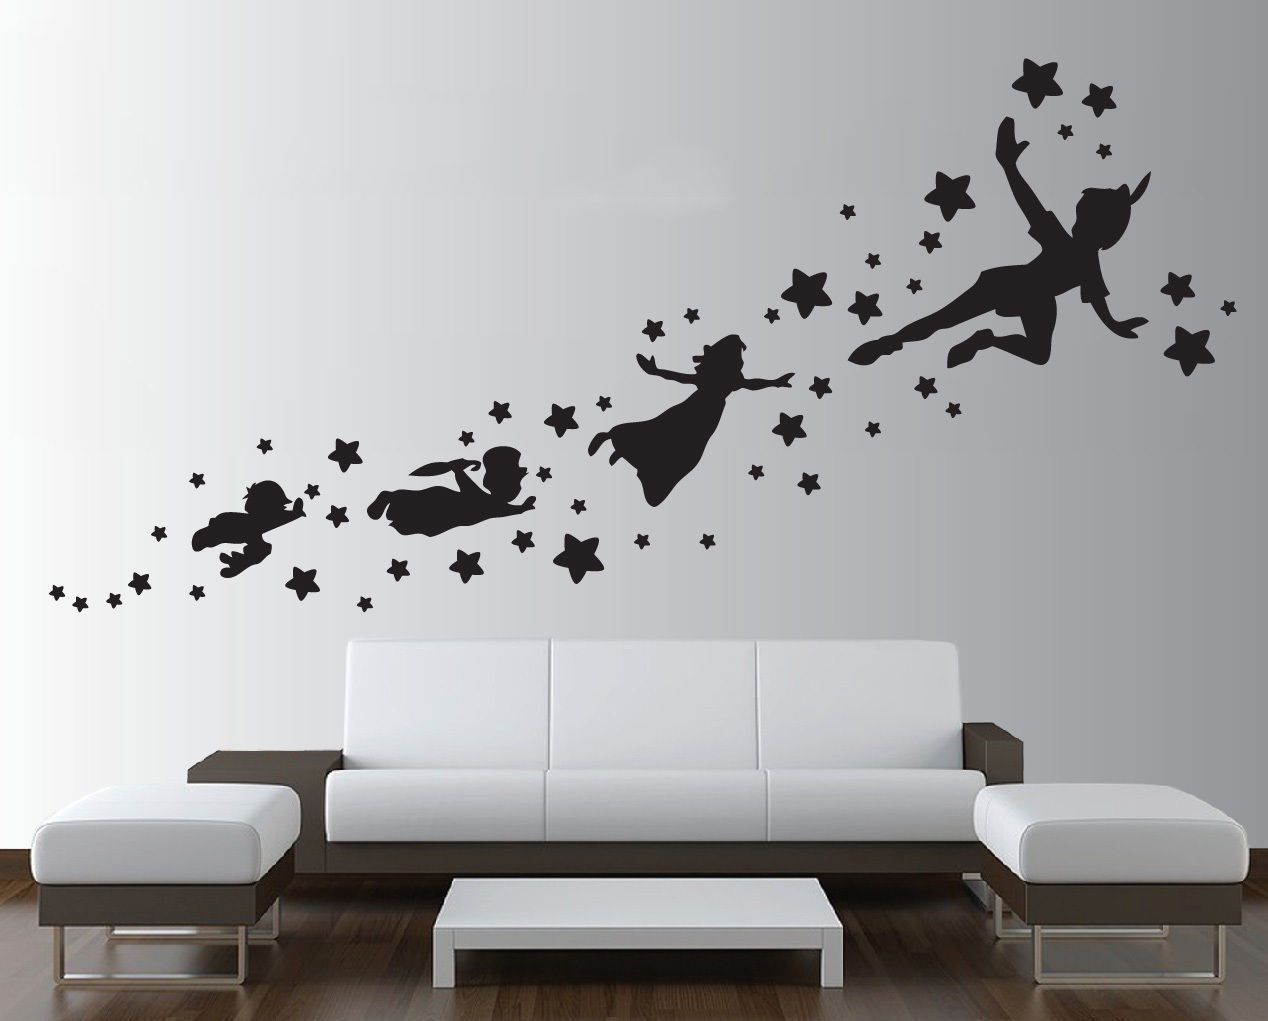 e48a65272472 Wall Stickers Home Decor. Wall decals, laptop stickers, wall tattoo. Buy wall  stickers online. Children room, living room, kitchen stickers, wall decor